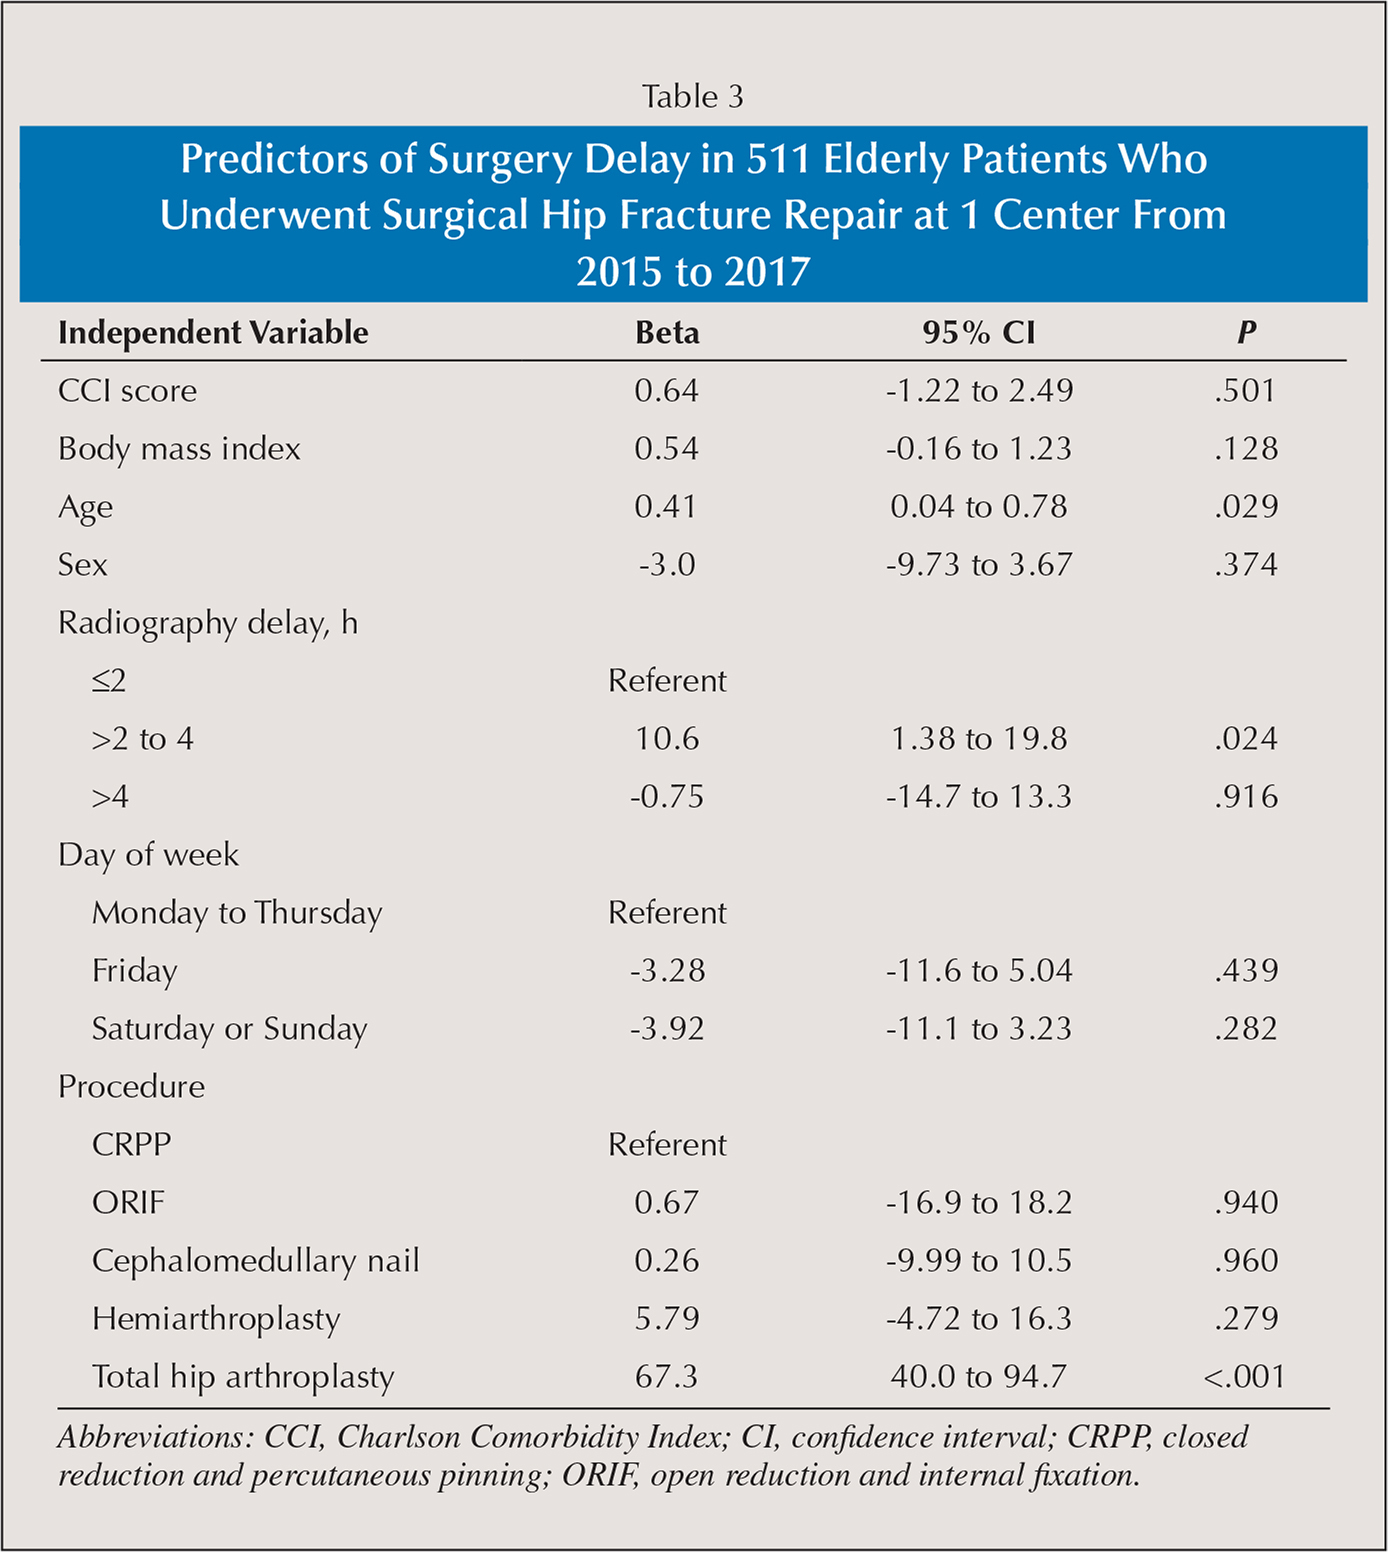 Predictors of Surgery Delay in 511 Elderly Patients Who Underwent Surgical Hip Fracture Repair at 1 Center From 2015 to 2017